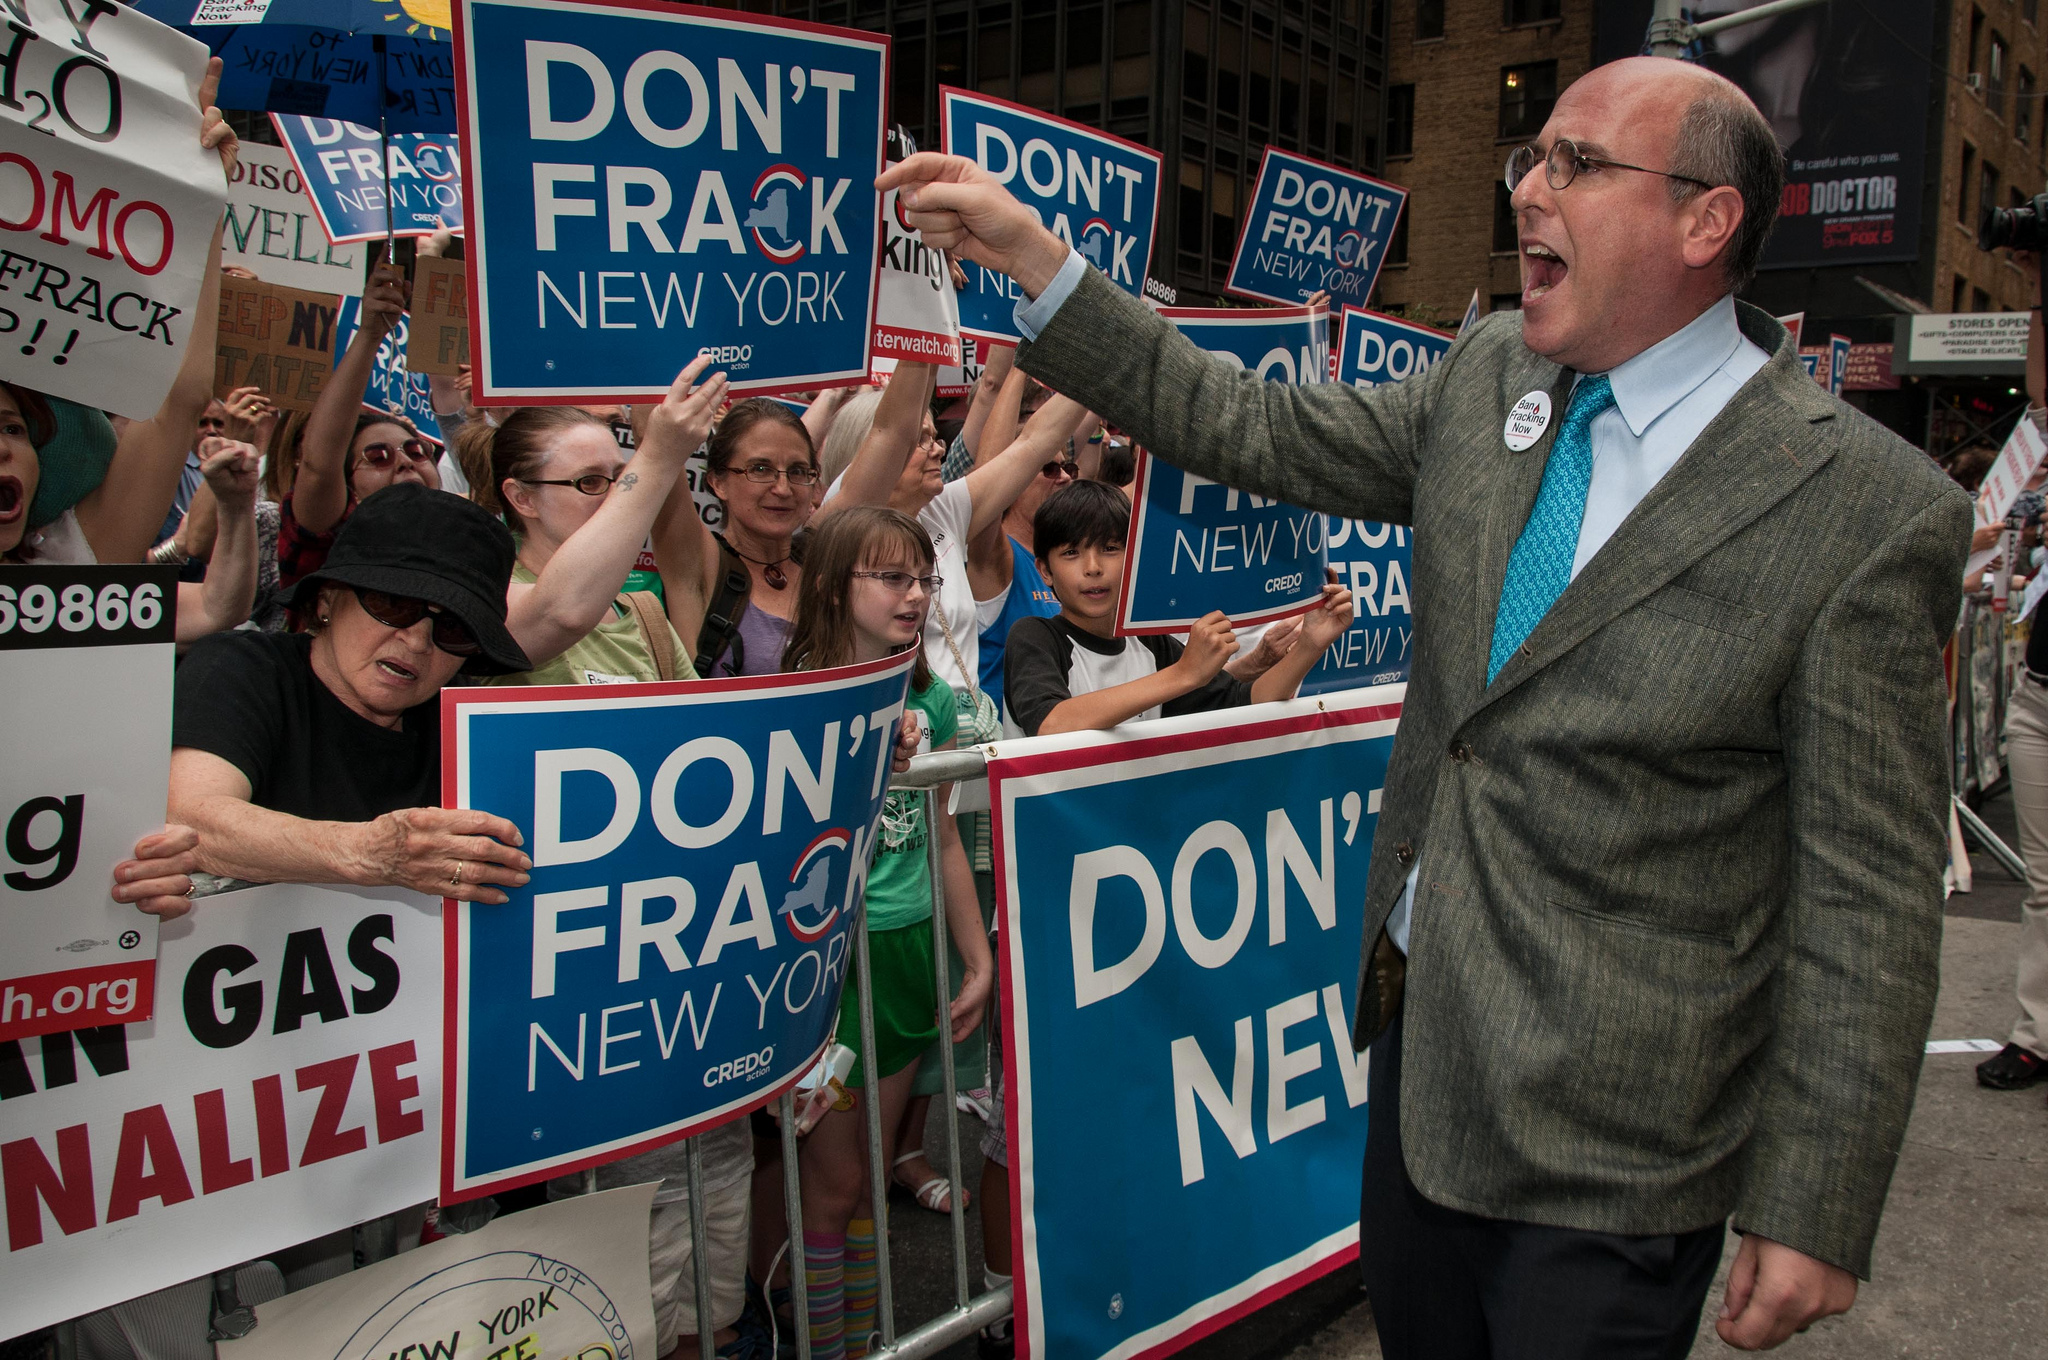 What Really Drives Anti-Fracking Zealots?